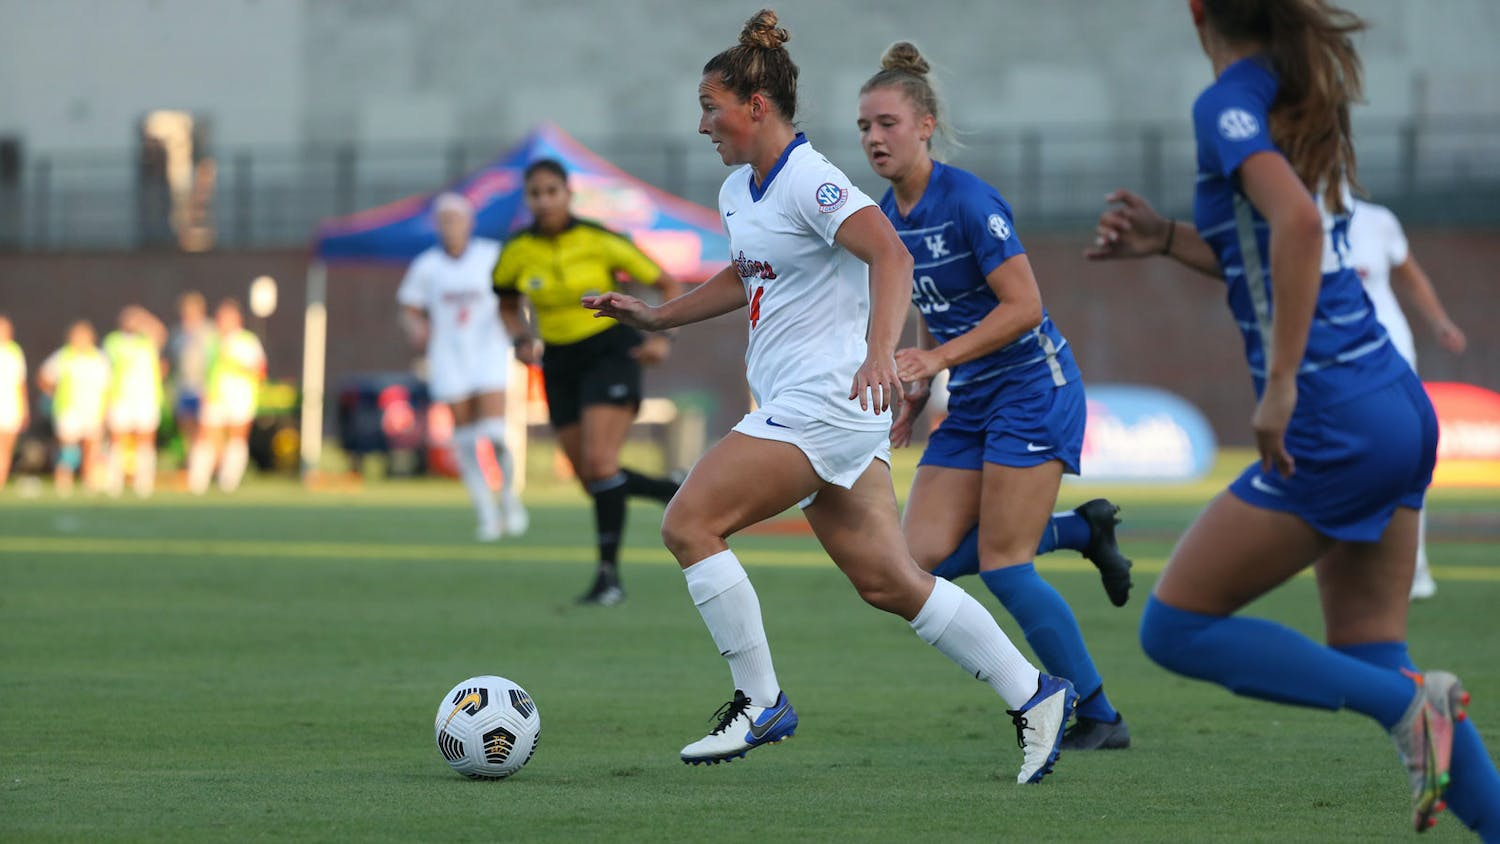 Florida's Madison Alexander dribbles with the ball during a game against Kentucky on Sept. 23